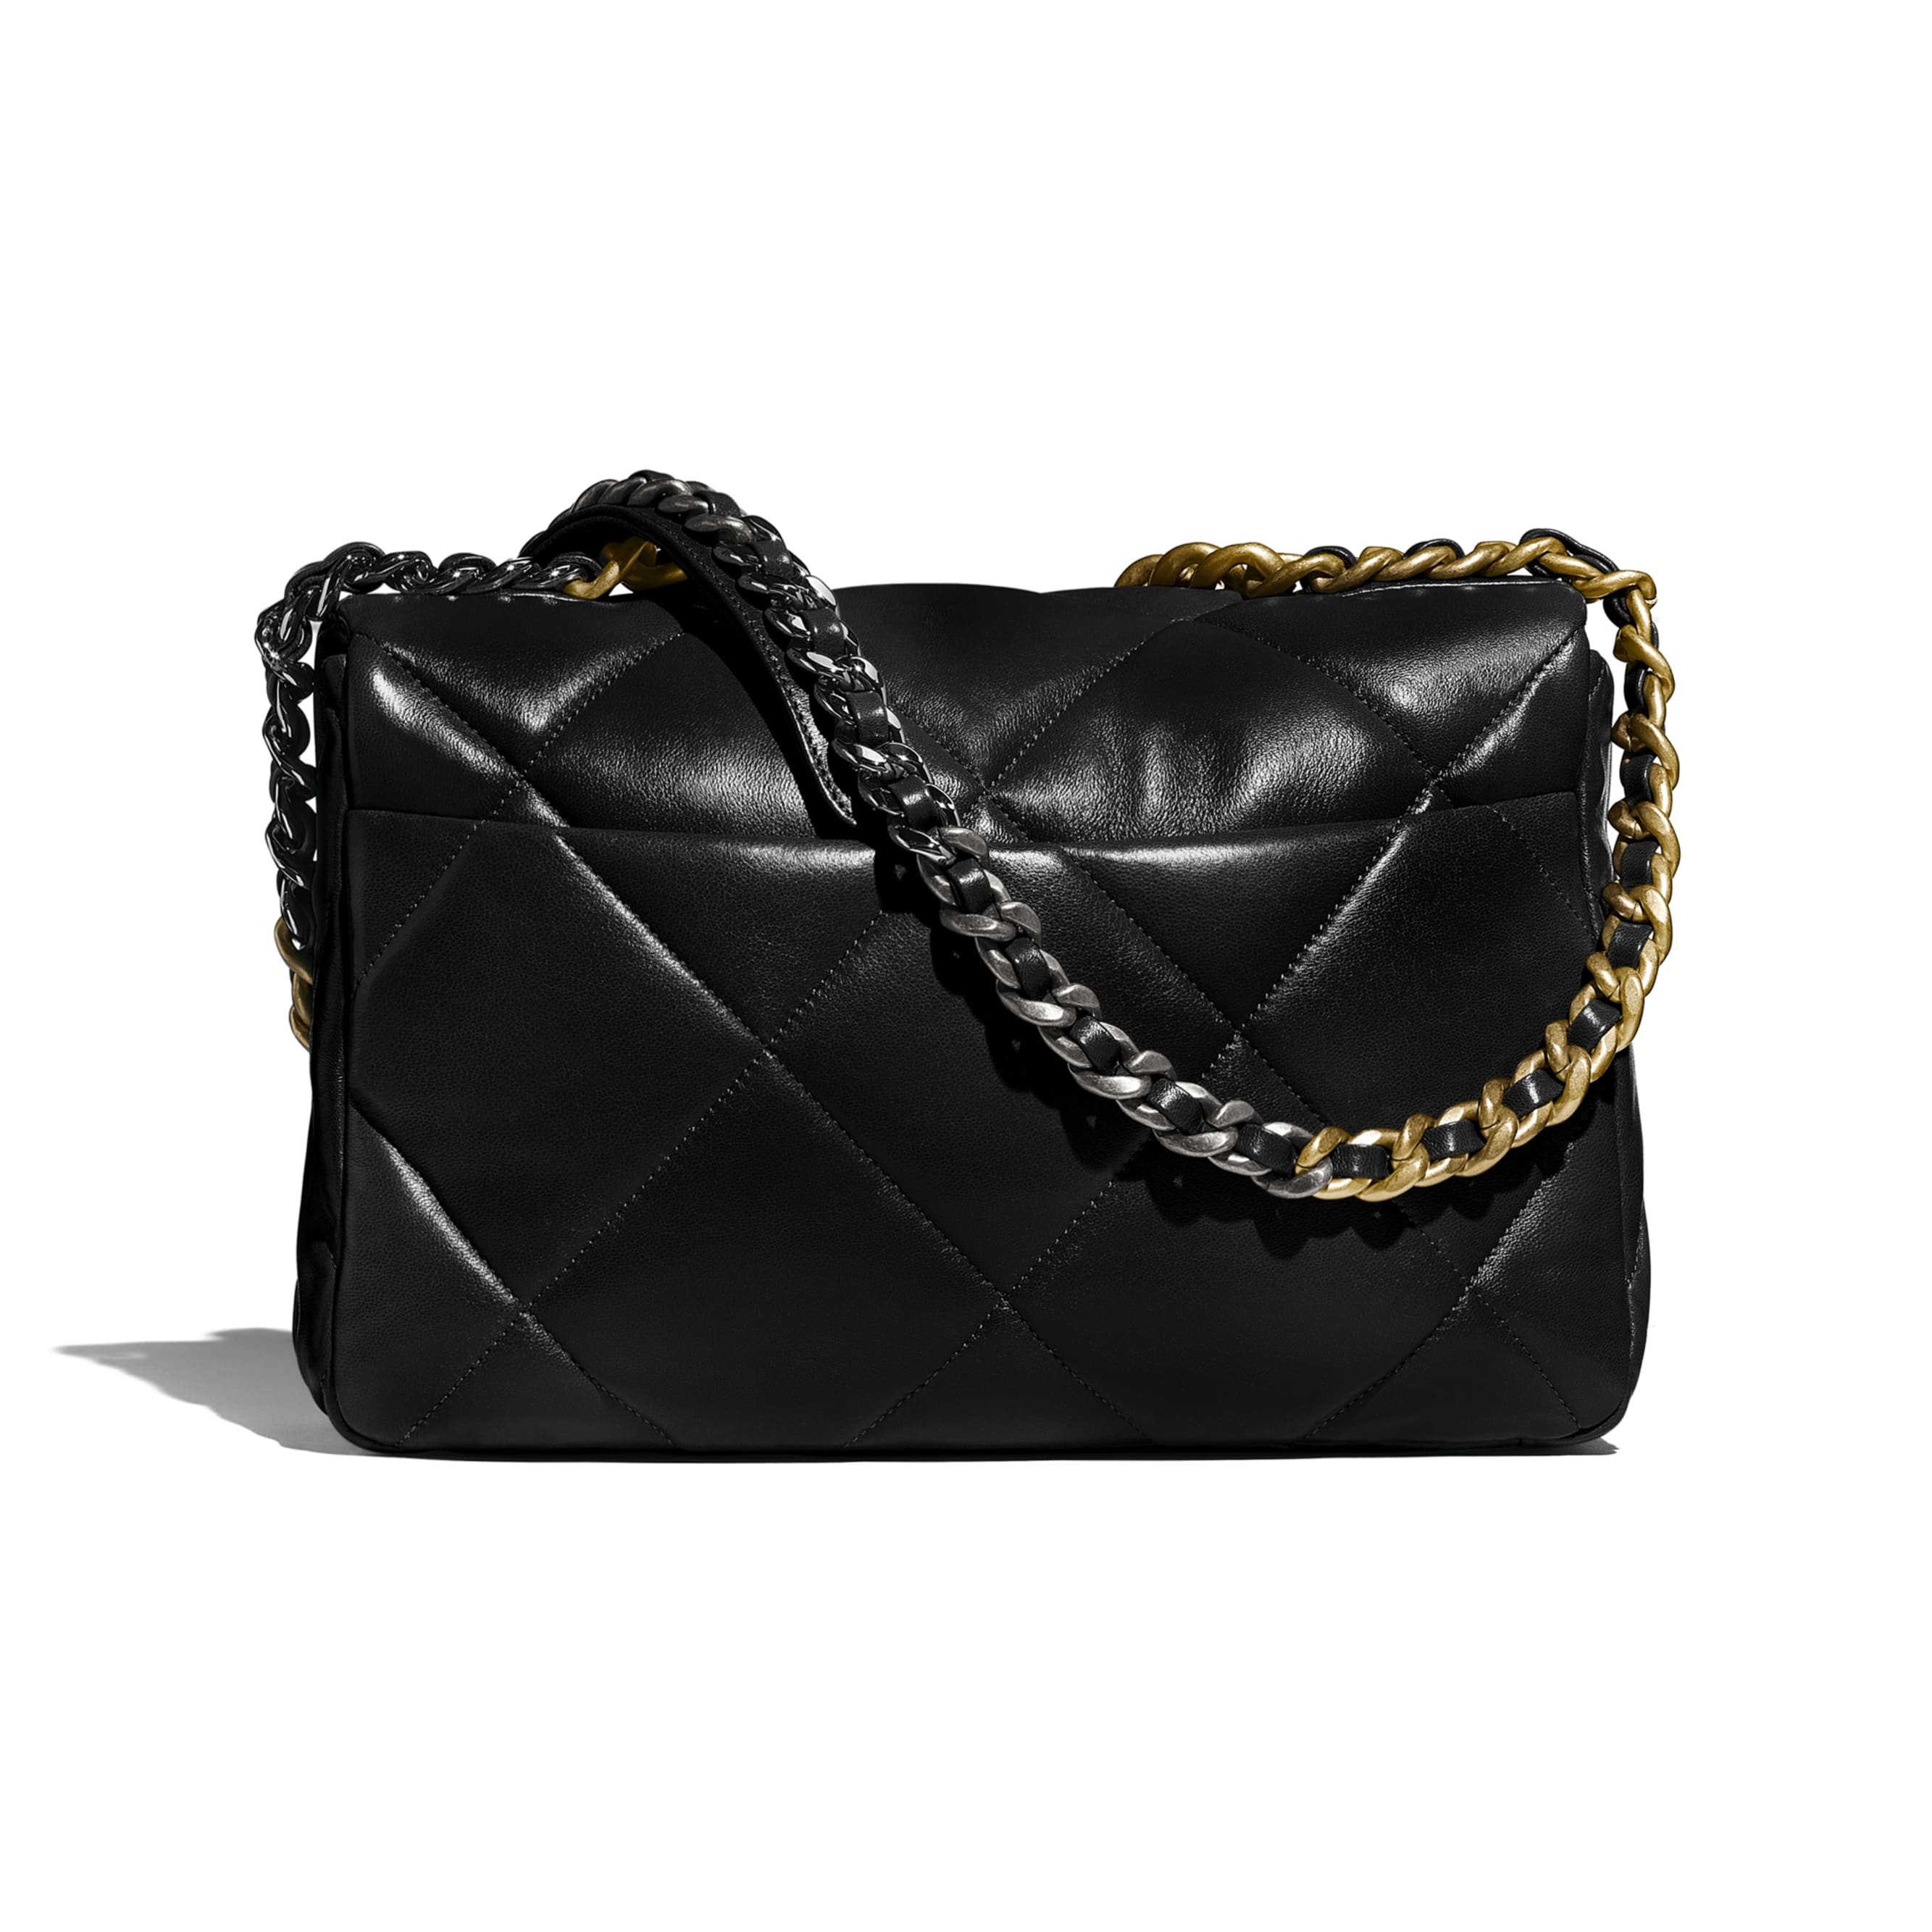 CHANEL 19 Large Handbag - Black - Lambskin, Gold-Tone, Silver-Tone & Ruthenium-Finish Metal - CHANEL - Alternative view - see standard sized version